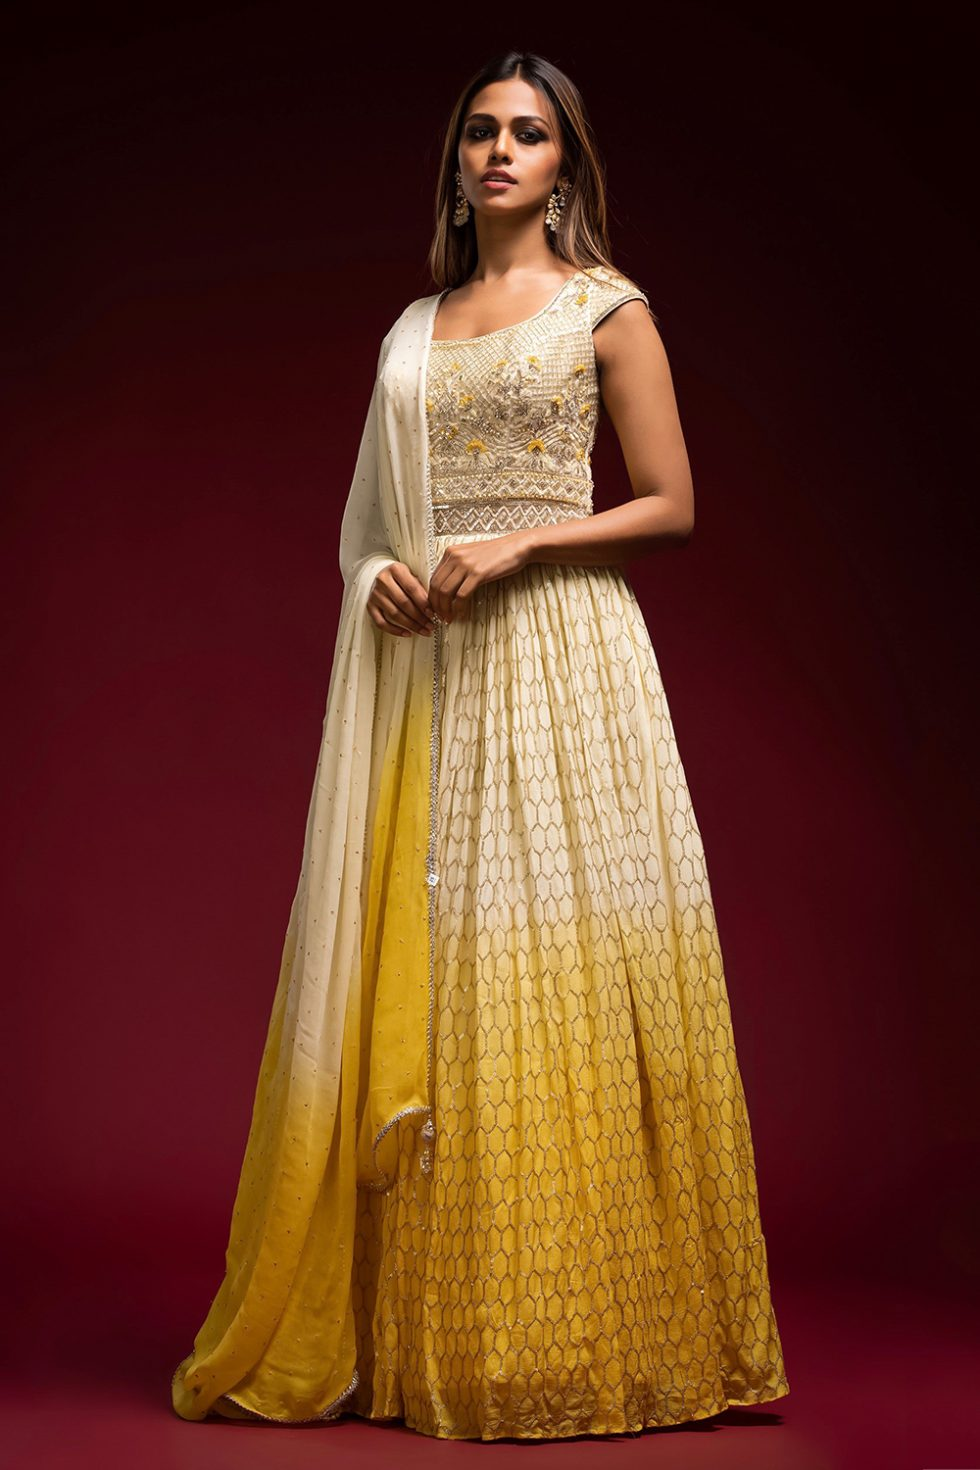 Ombré cream to yellow gold geometric patterned Anarkali gown set with a hand embroidered bodice paired with a matching shaded dupatta and gold embellishments.